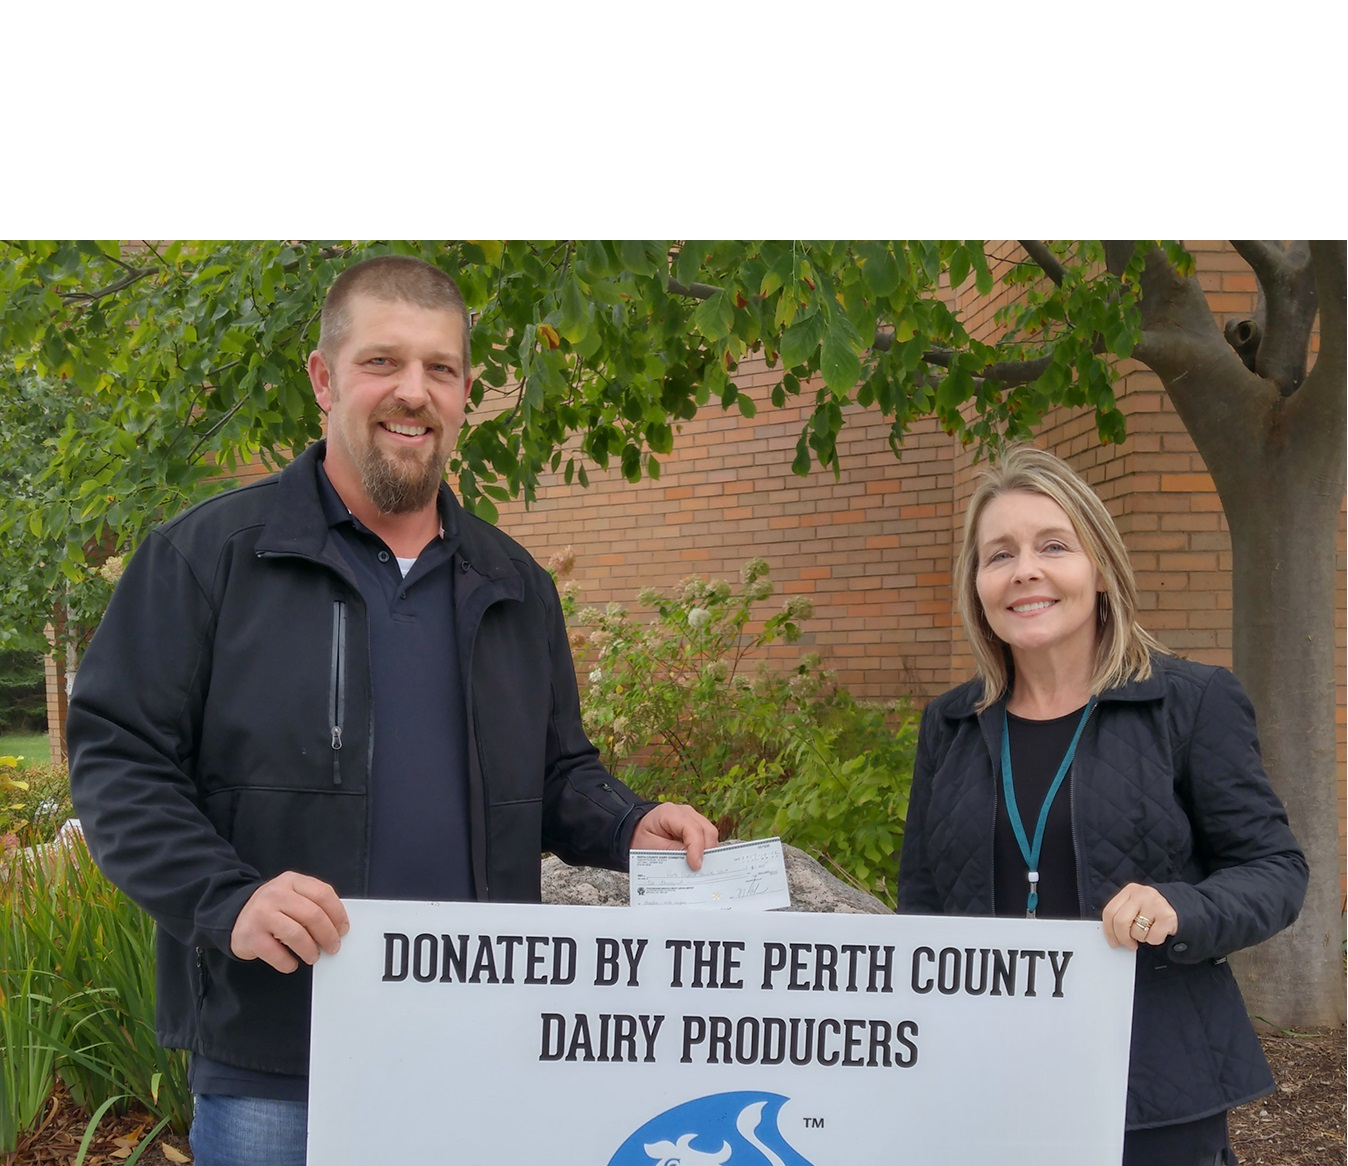 Health Unit Support From Perth County Dairy Producers